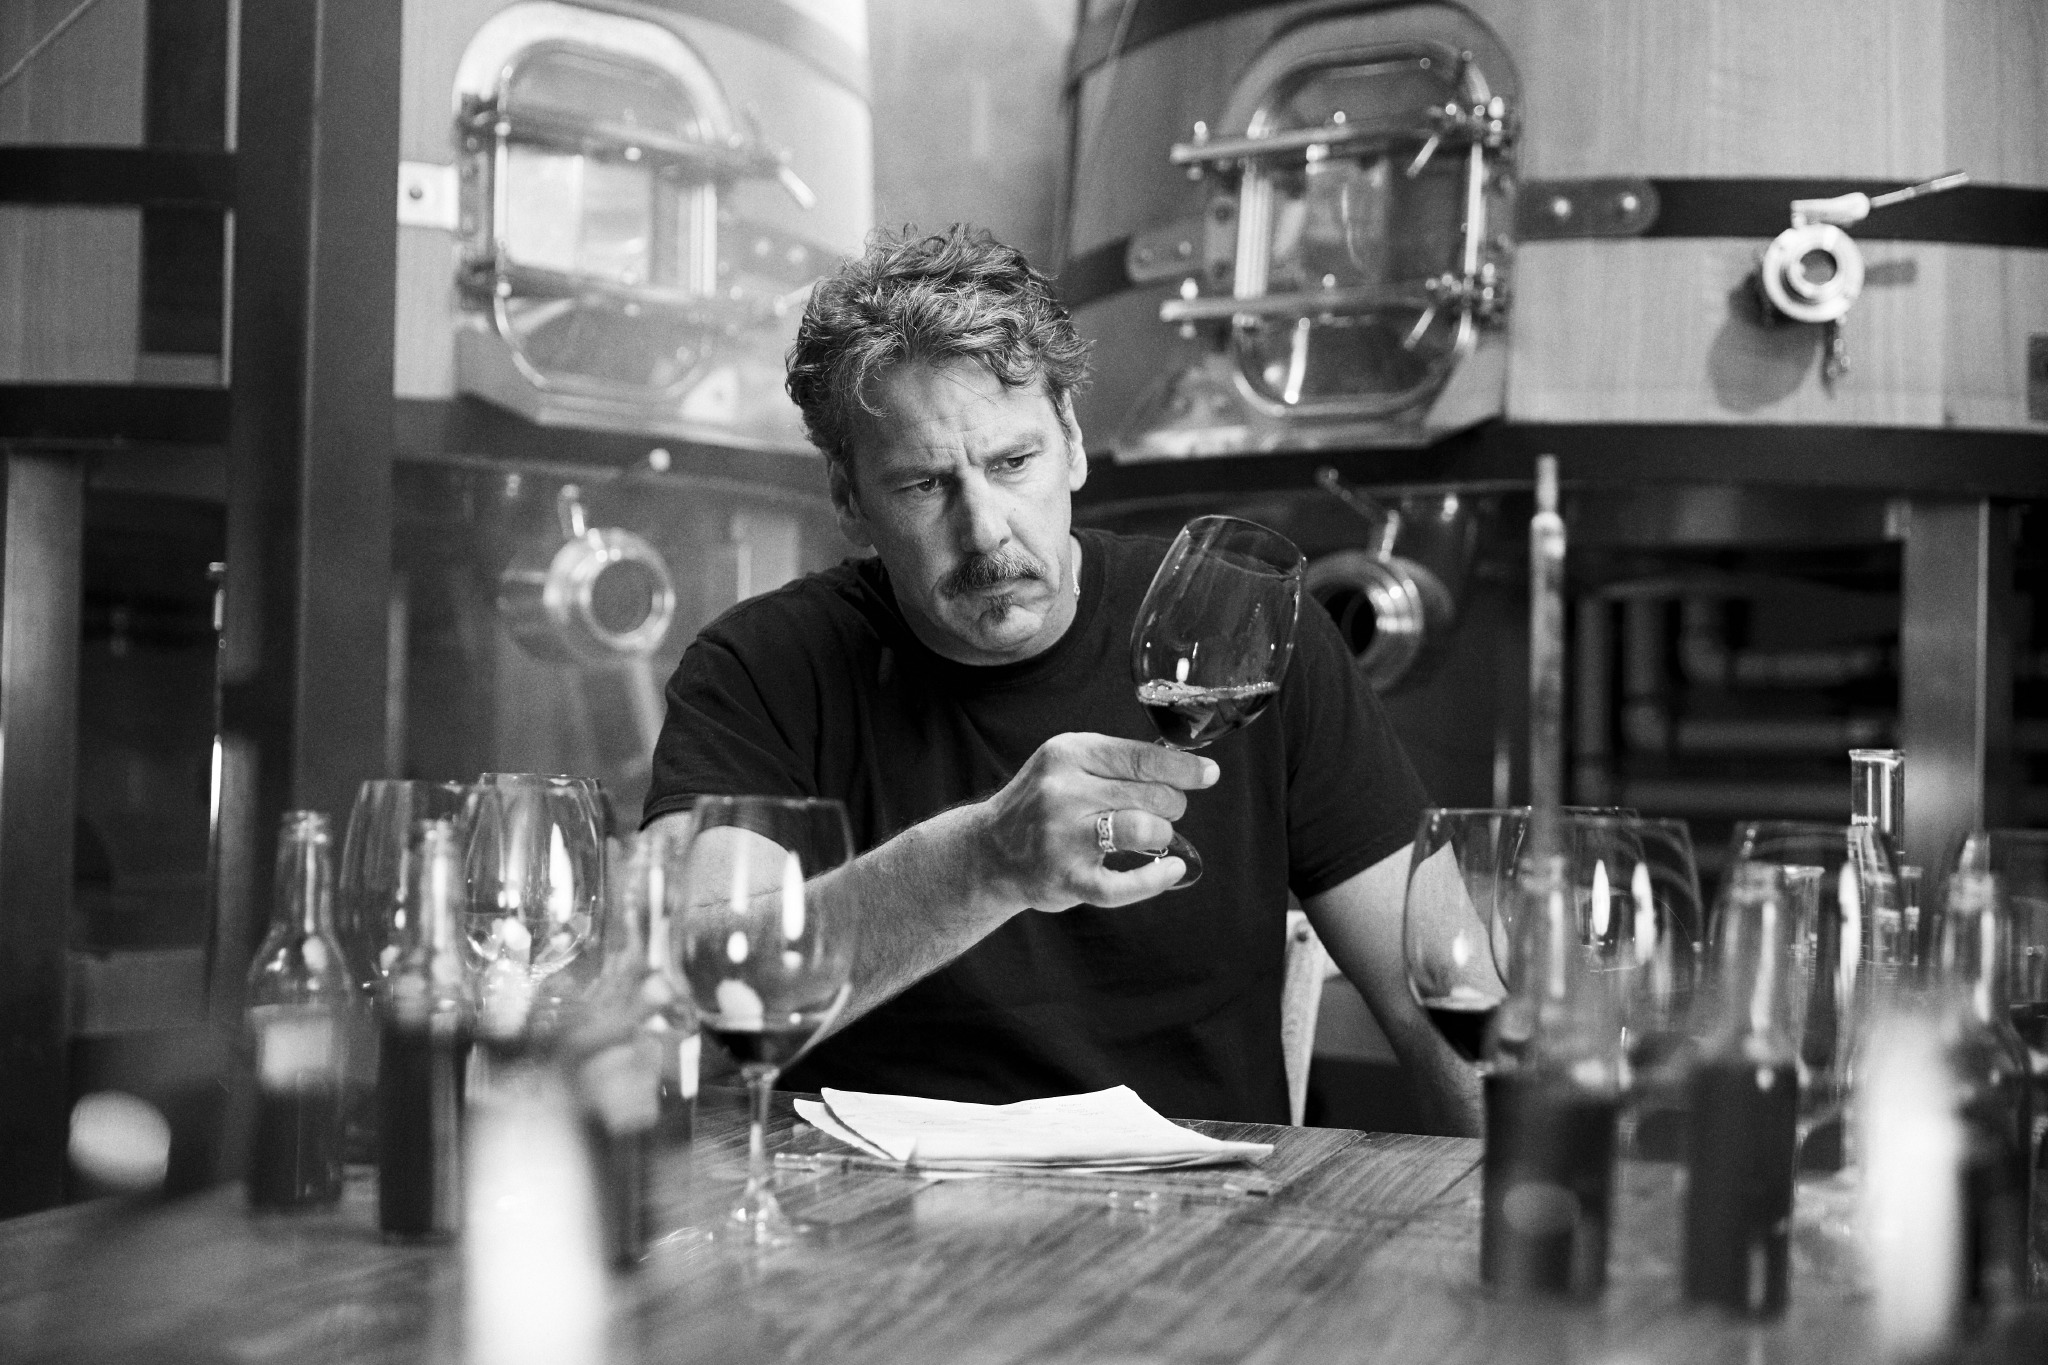 One of North America's great winemakers, Chris Carpenter crafts some stunning wines at La Jota.